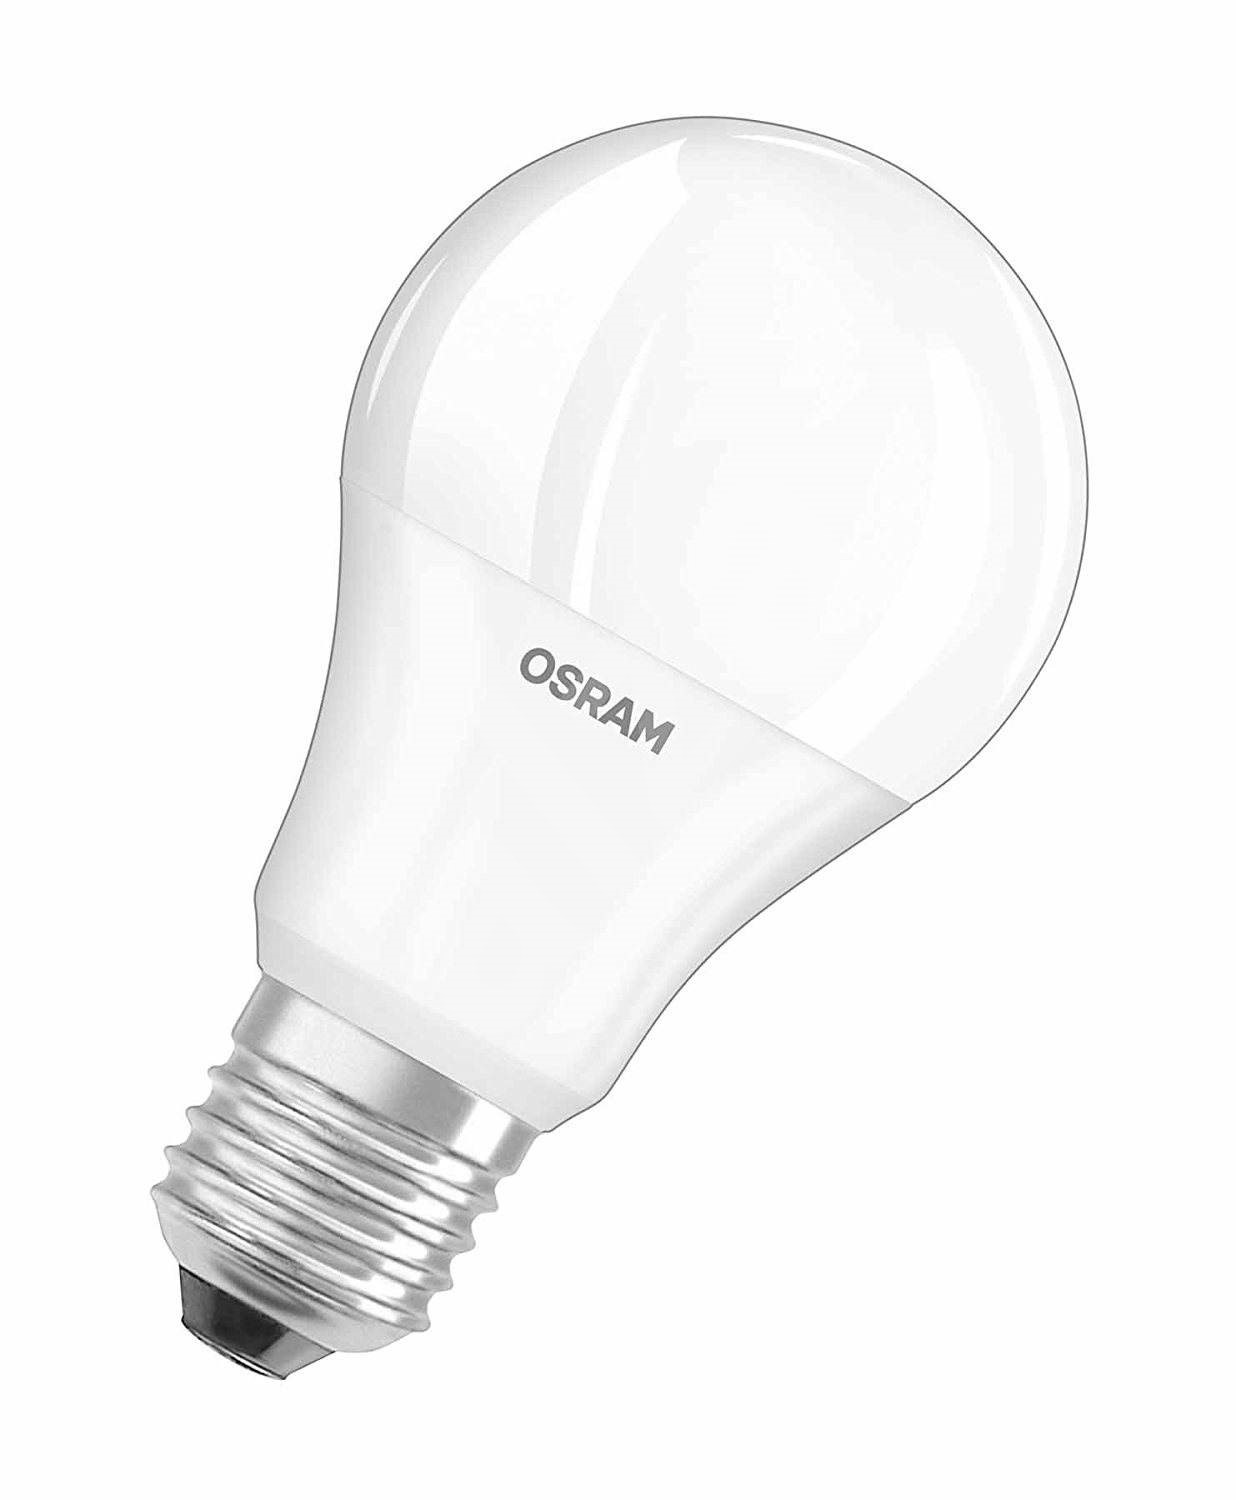 osram led superstar 8w gu10 2700k 4000k led bulb. Black Bedroom Furniture Sets. Home Design Ideas